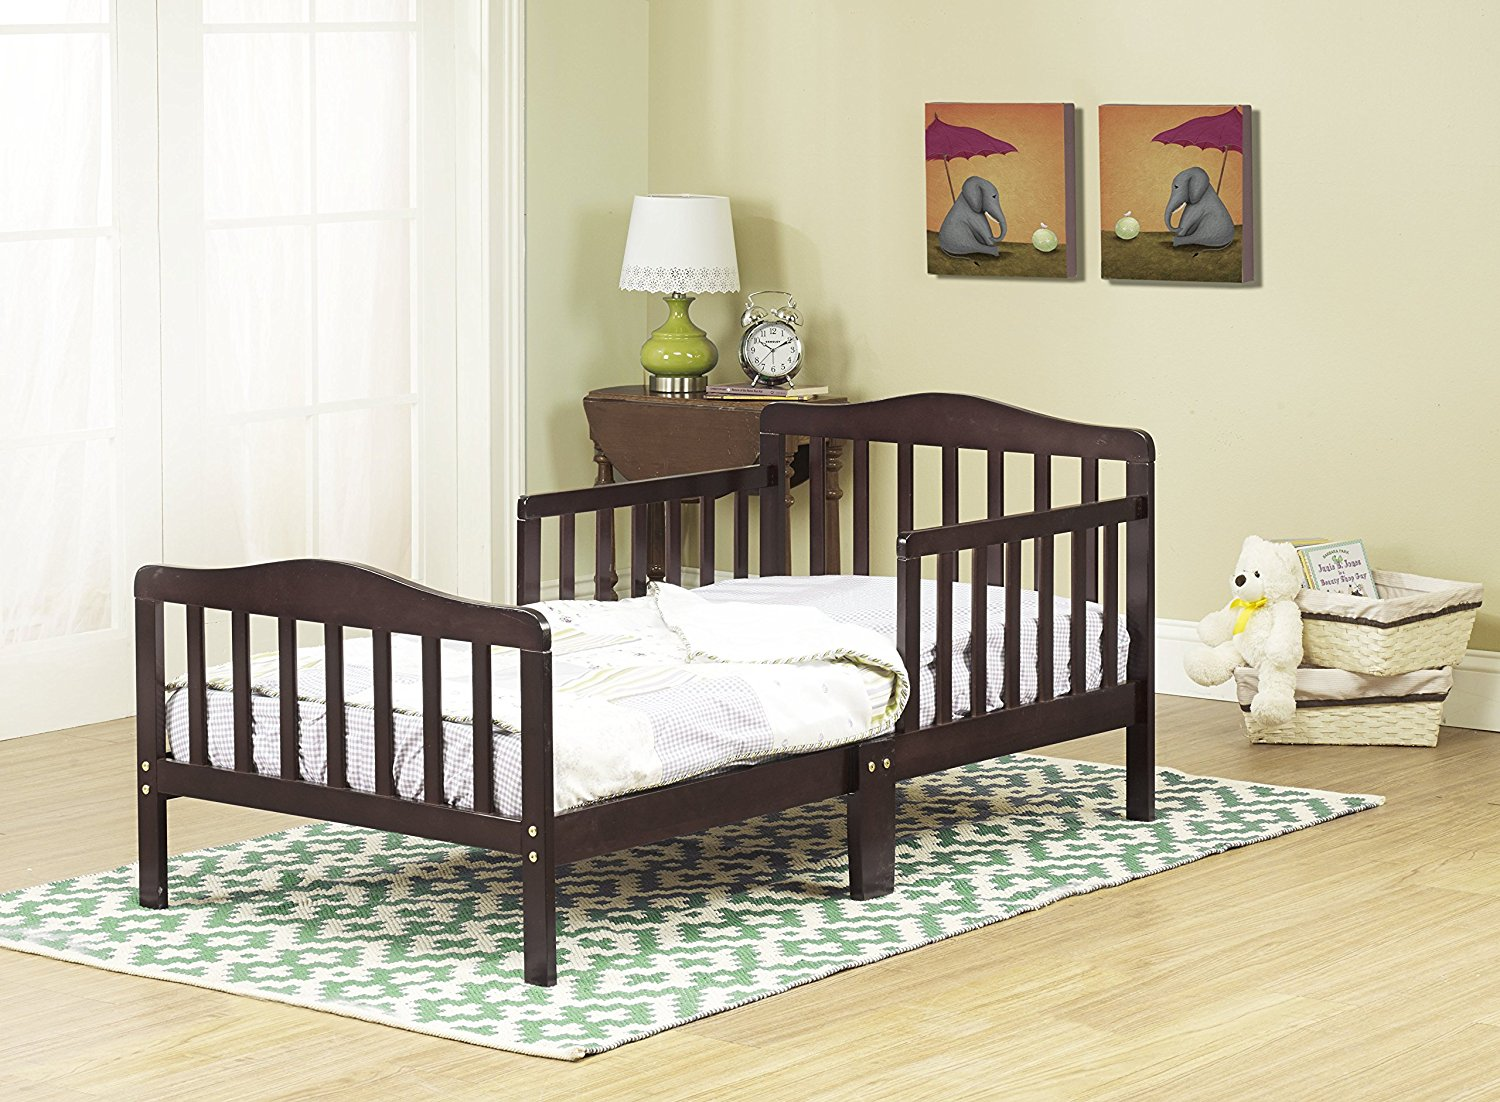 Cheap Toddler Beds Top 6 Best Toddler Beds In 2018 Reviews And Comparison Best Sorted